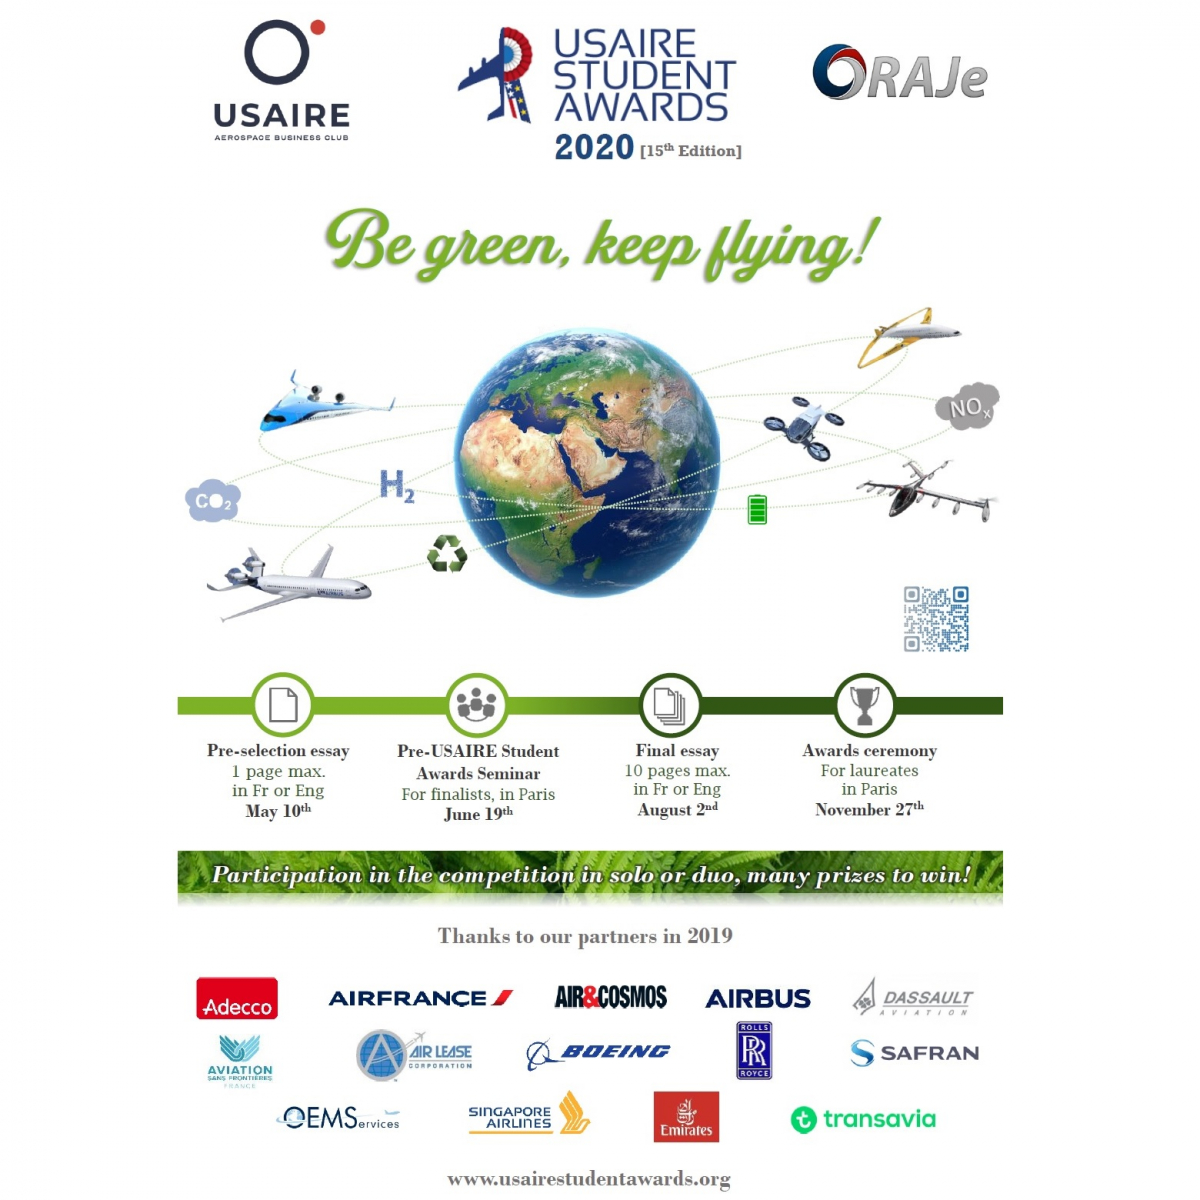 « Be green, Keep flying ! » : USAIRE Student Awards 2020